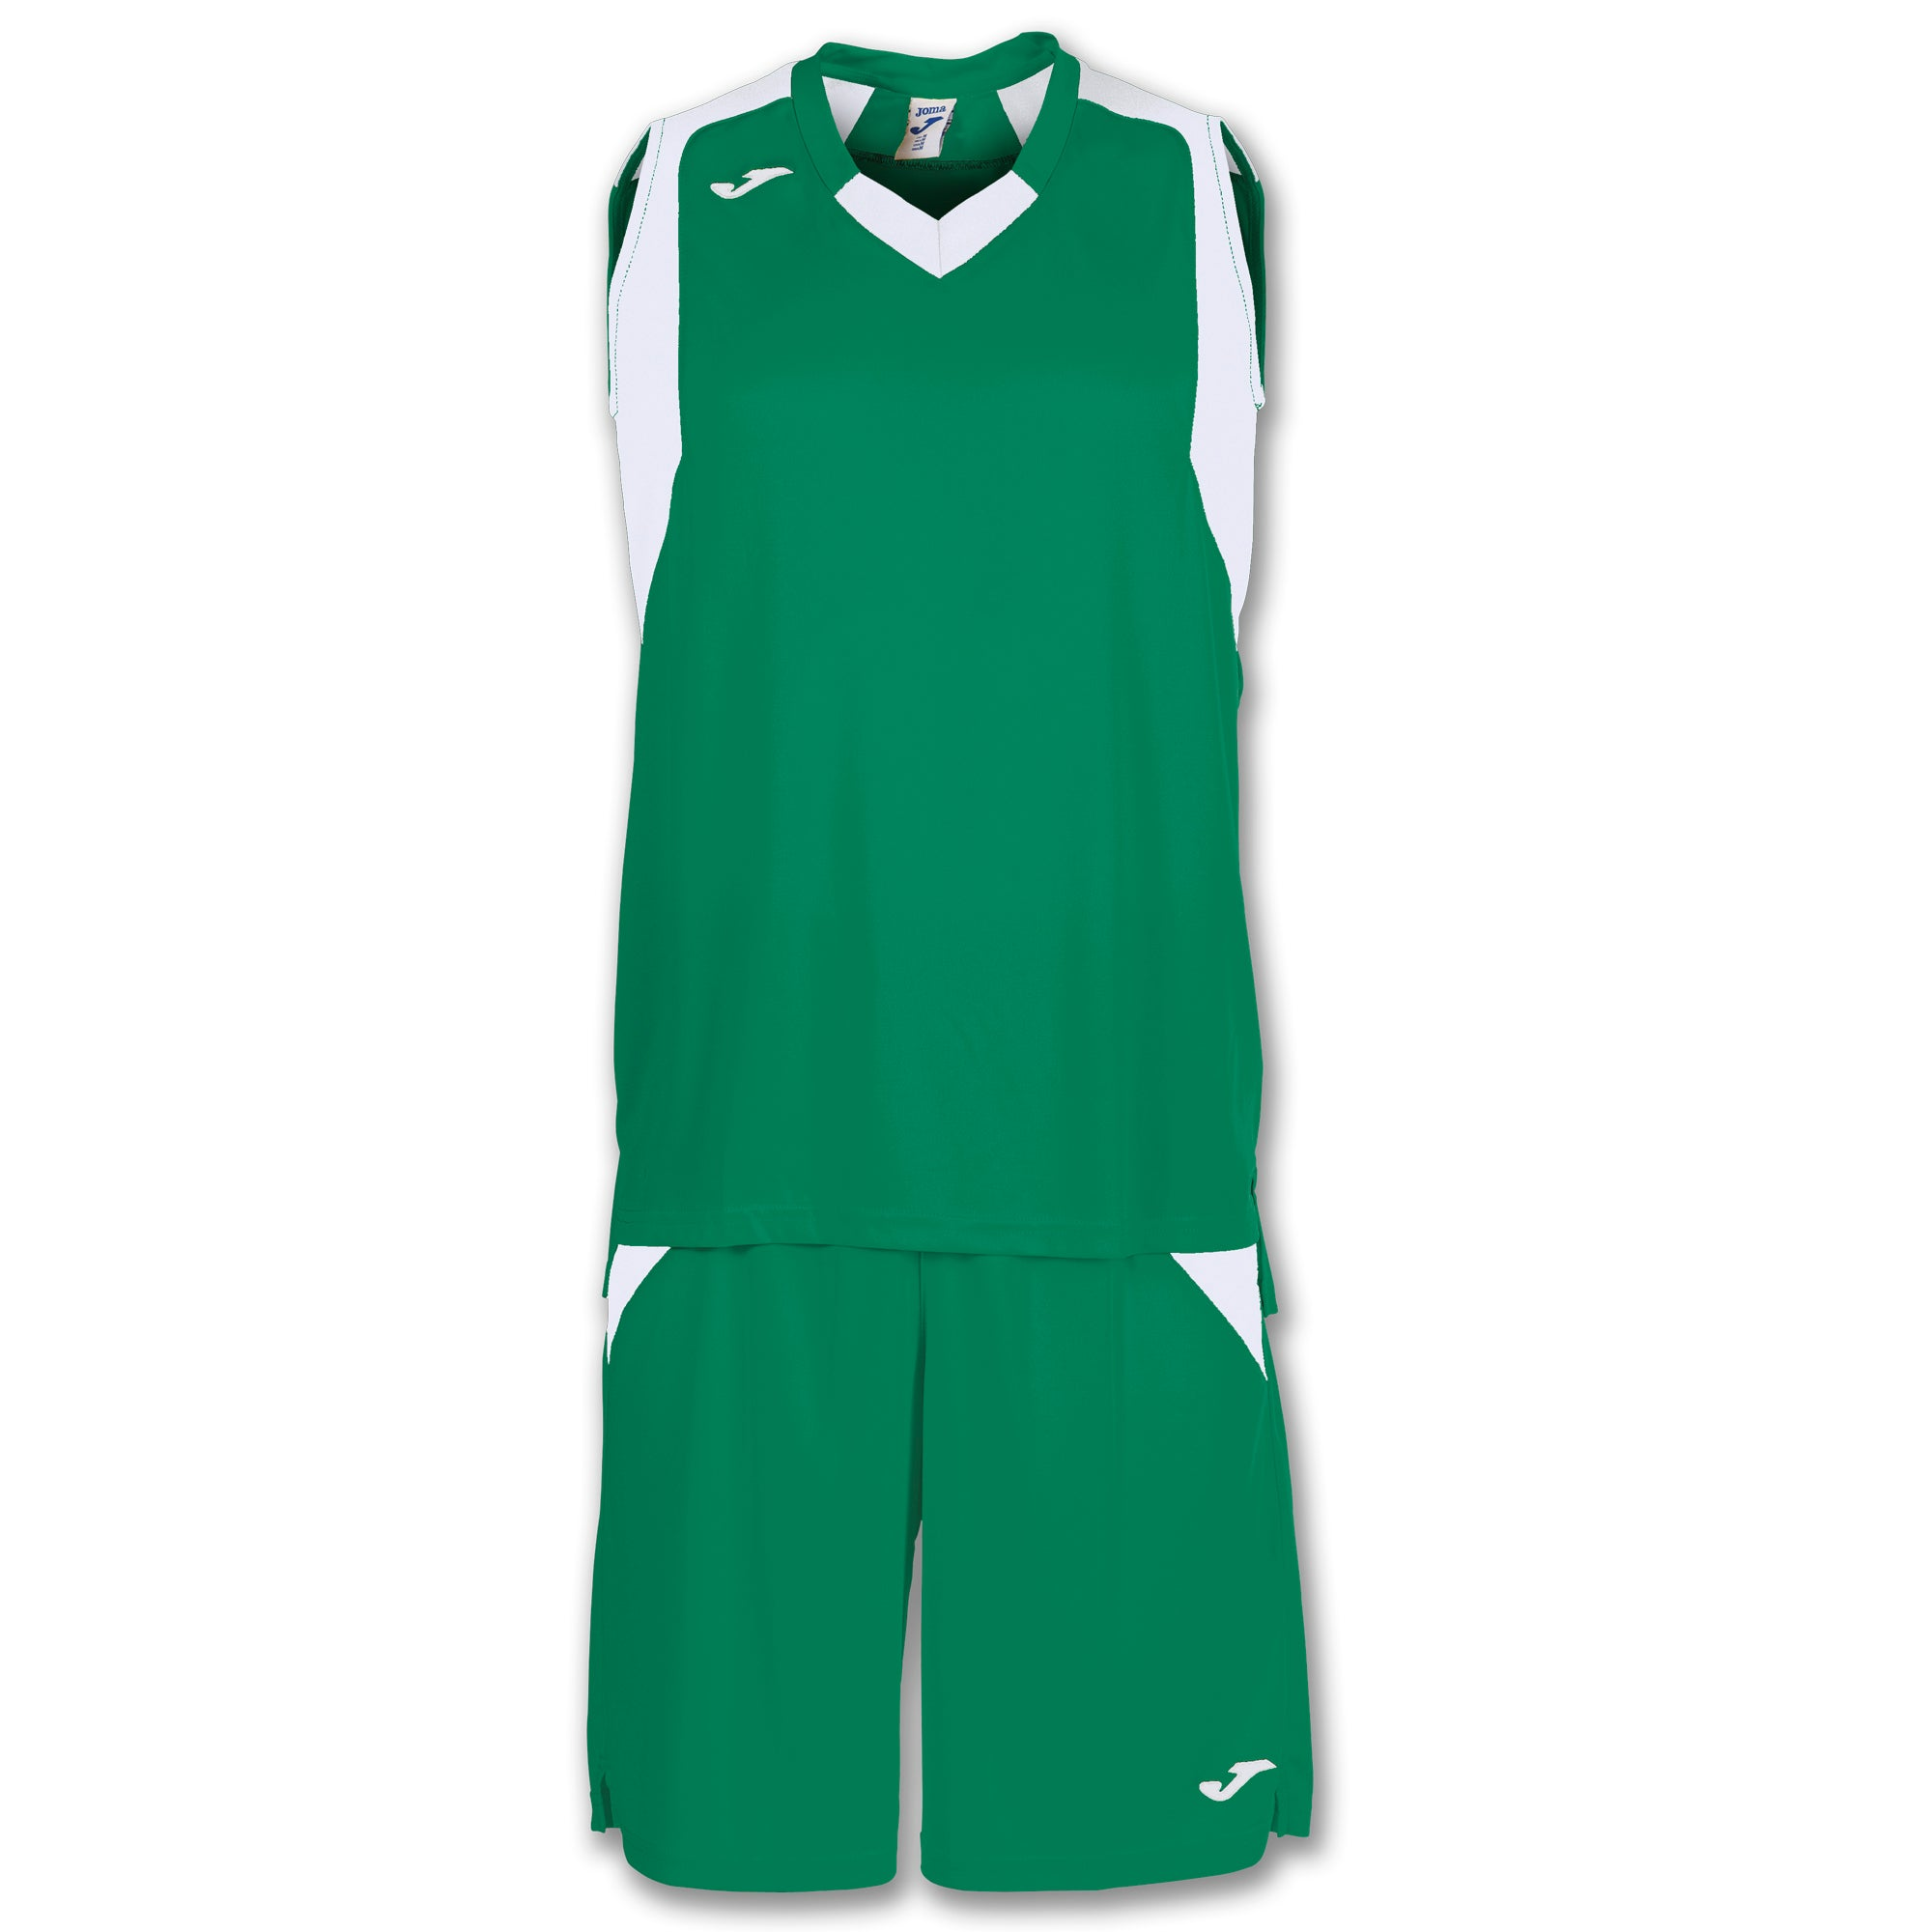 Teamwear - Joma Final Kit - Green Medium/White - JO-101115-452